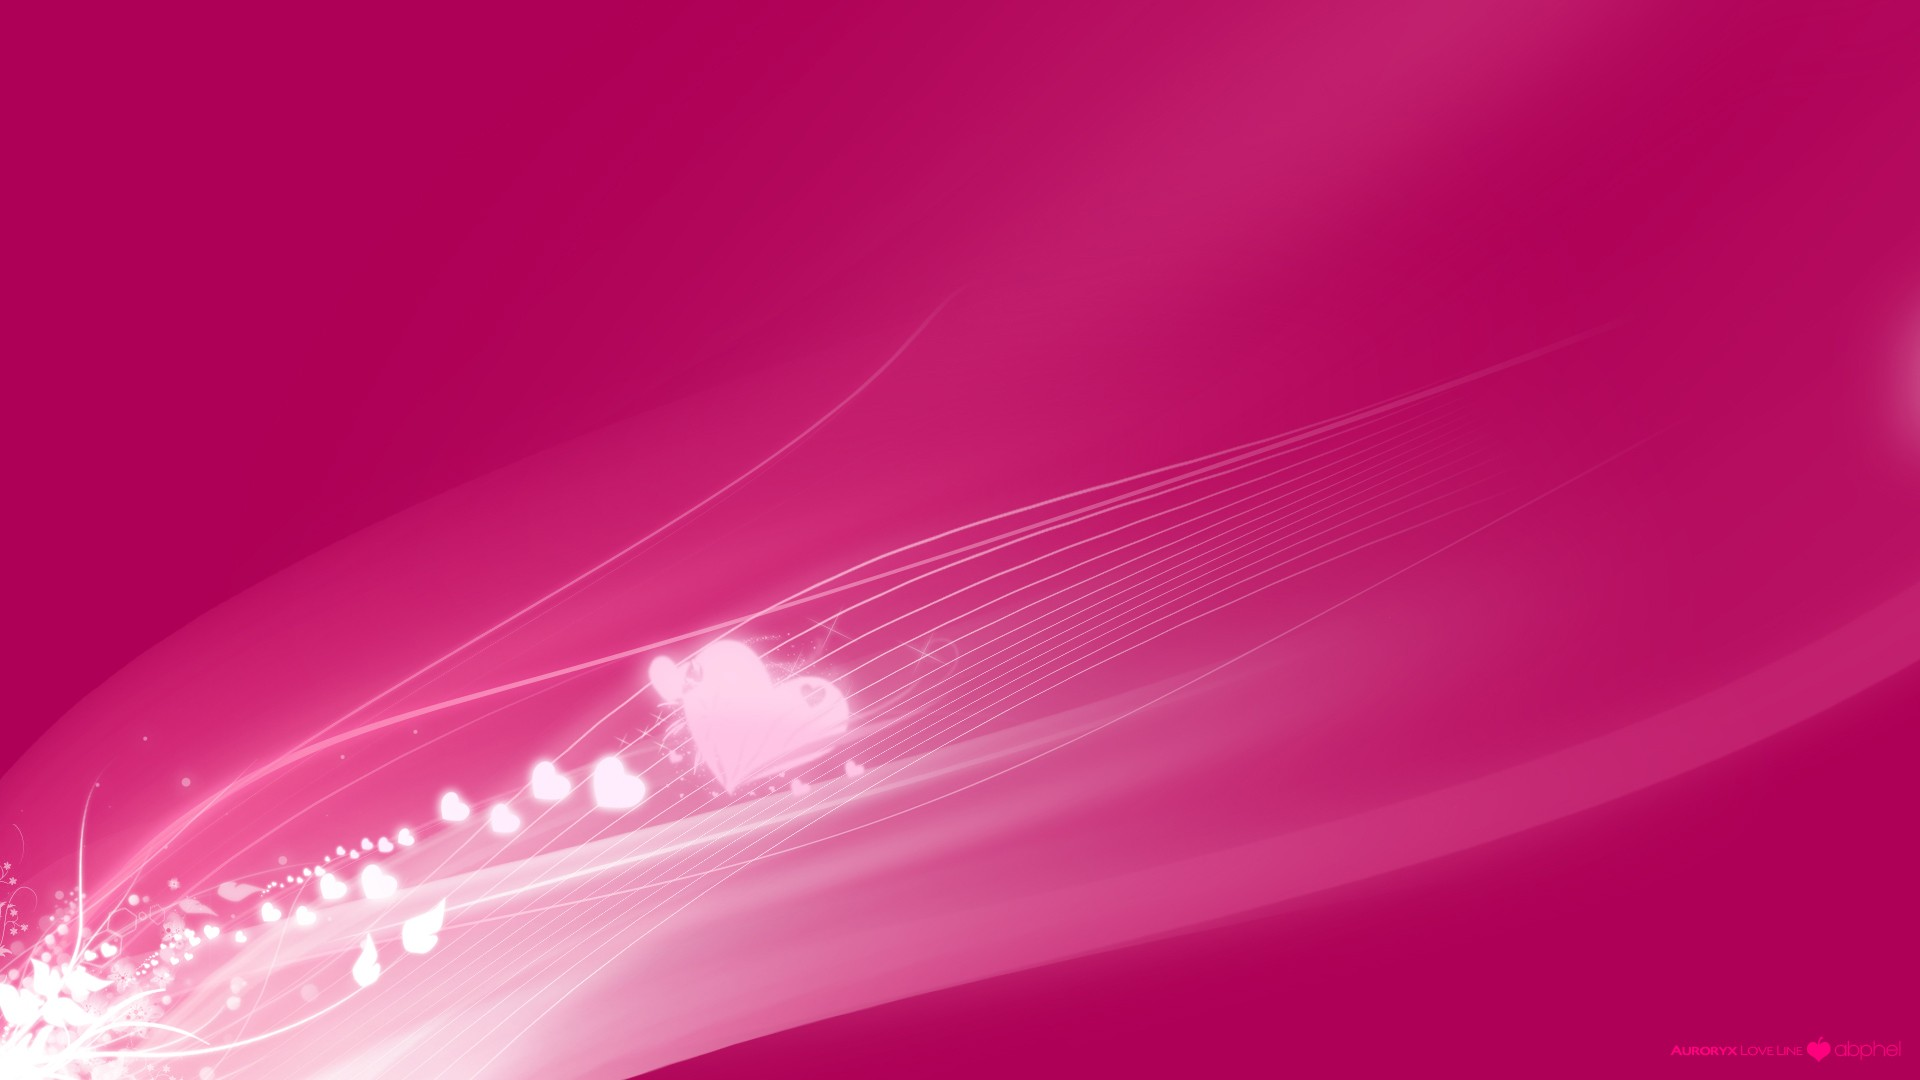 Love chat Background Wallpaper : Love Pink Background - WallpaperSafari